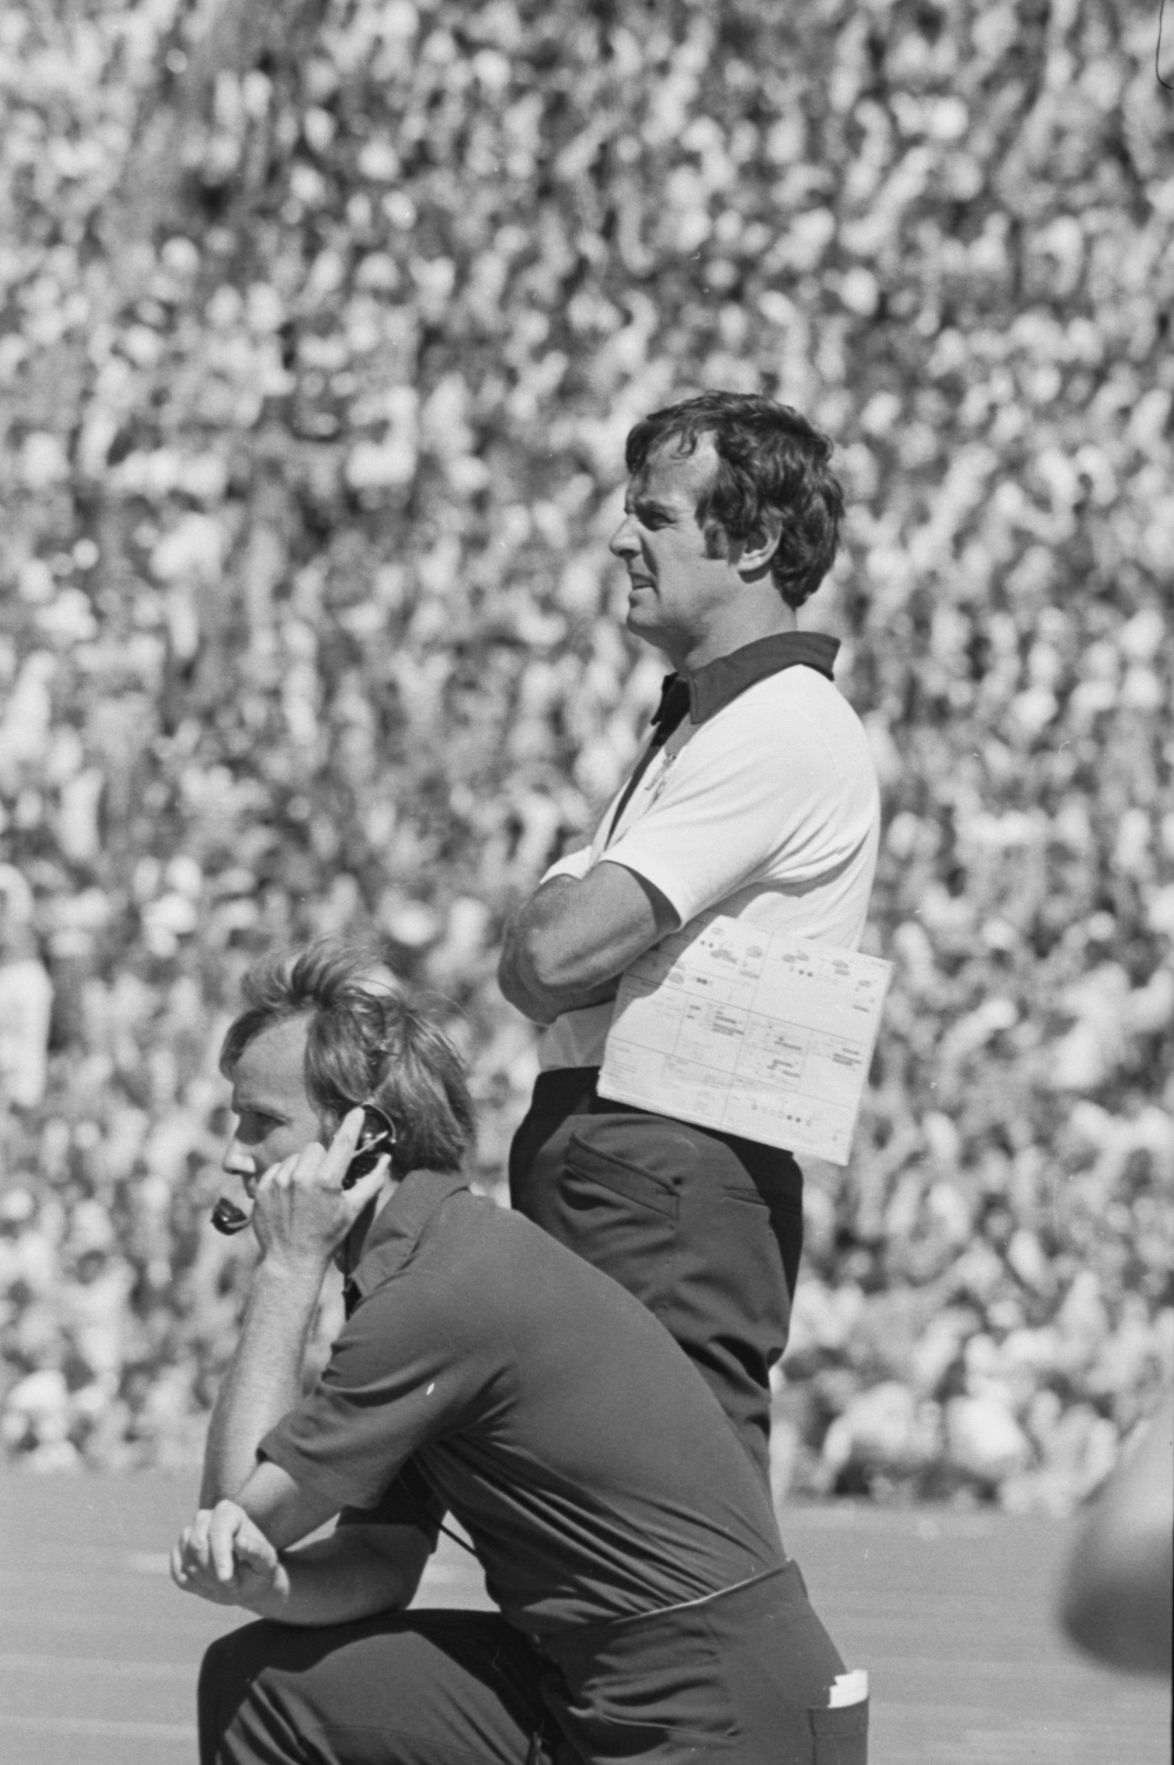 Mountaineer coach Frank Cignetti looks onto the field during a game in the 1970s.